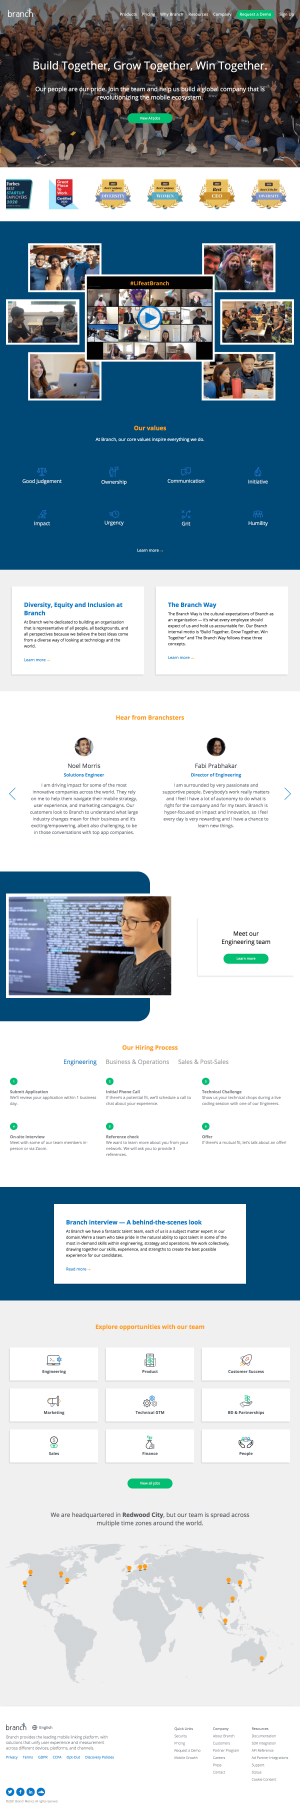 Branch – Careers page